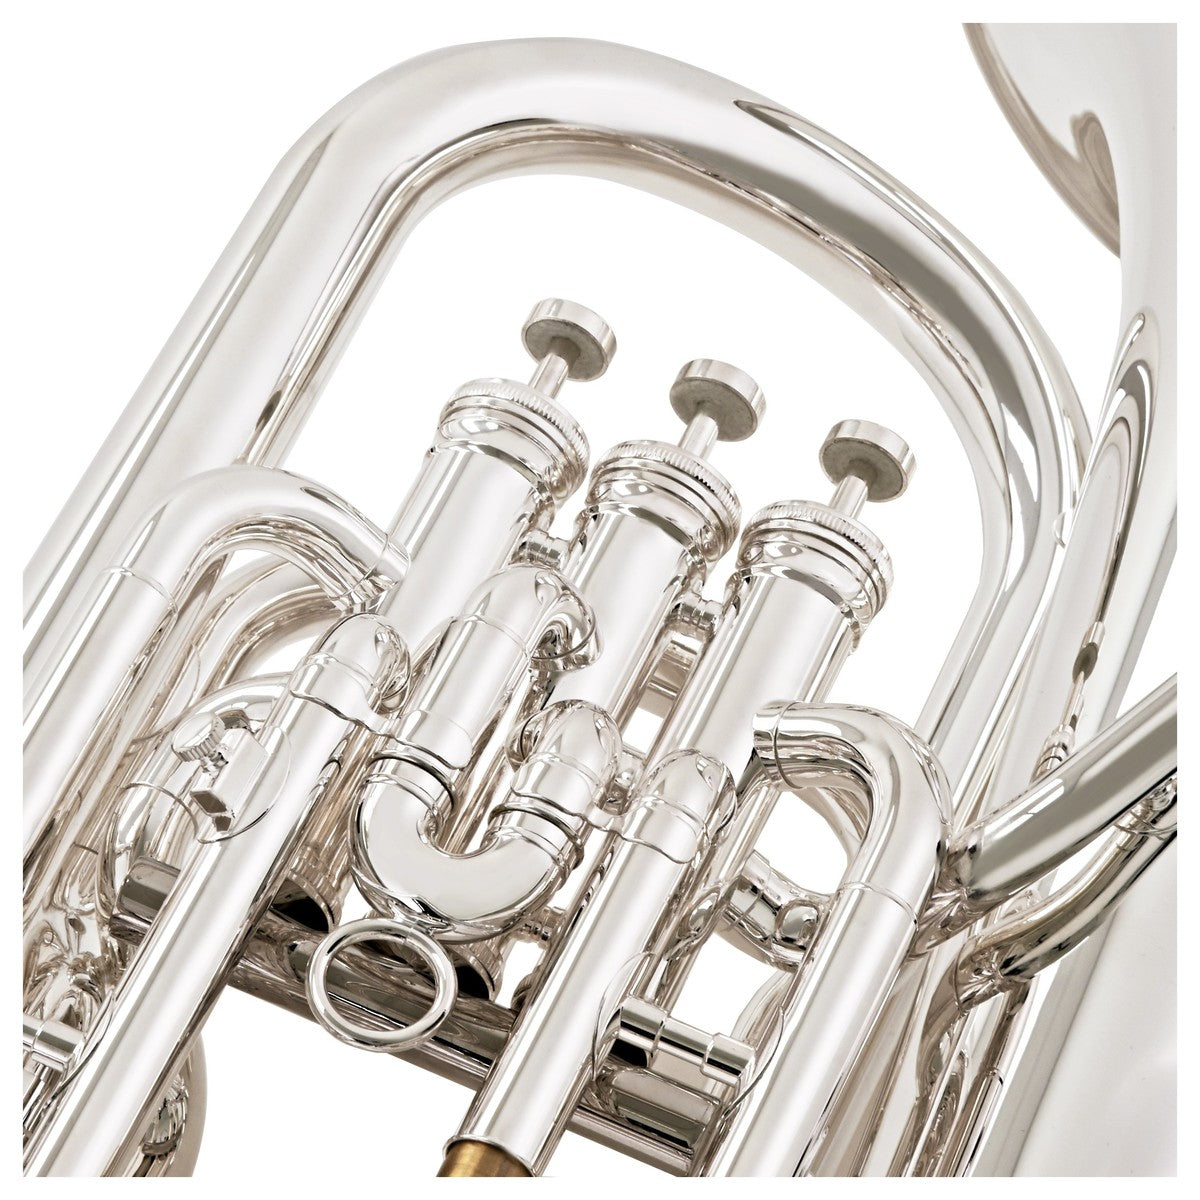 Besson BE165 4-Valve Euphonium